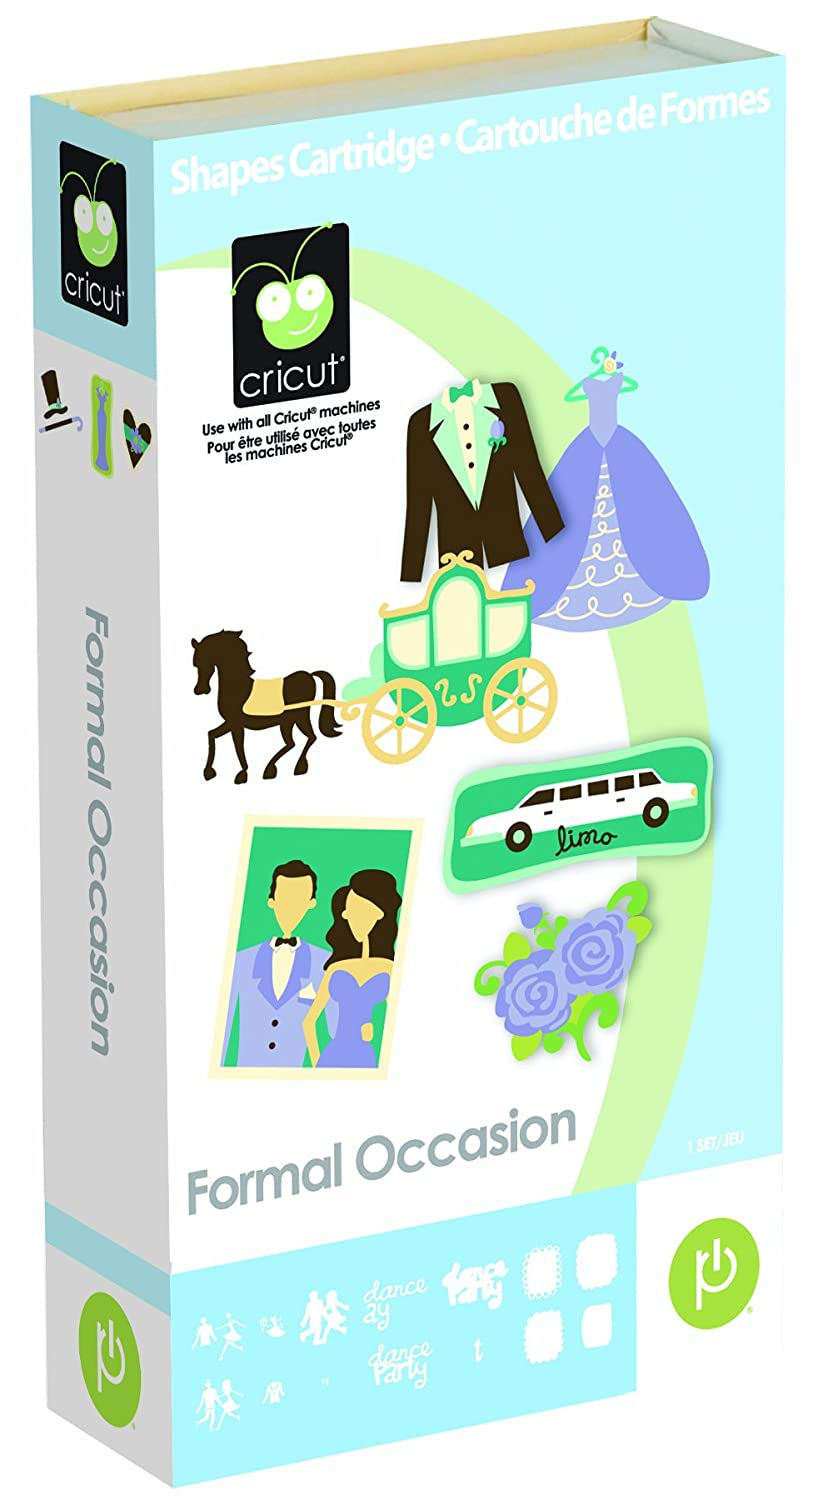 Cricut 2000936 Formal Occasion Cartridge